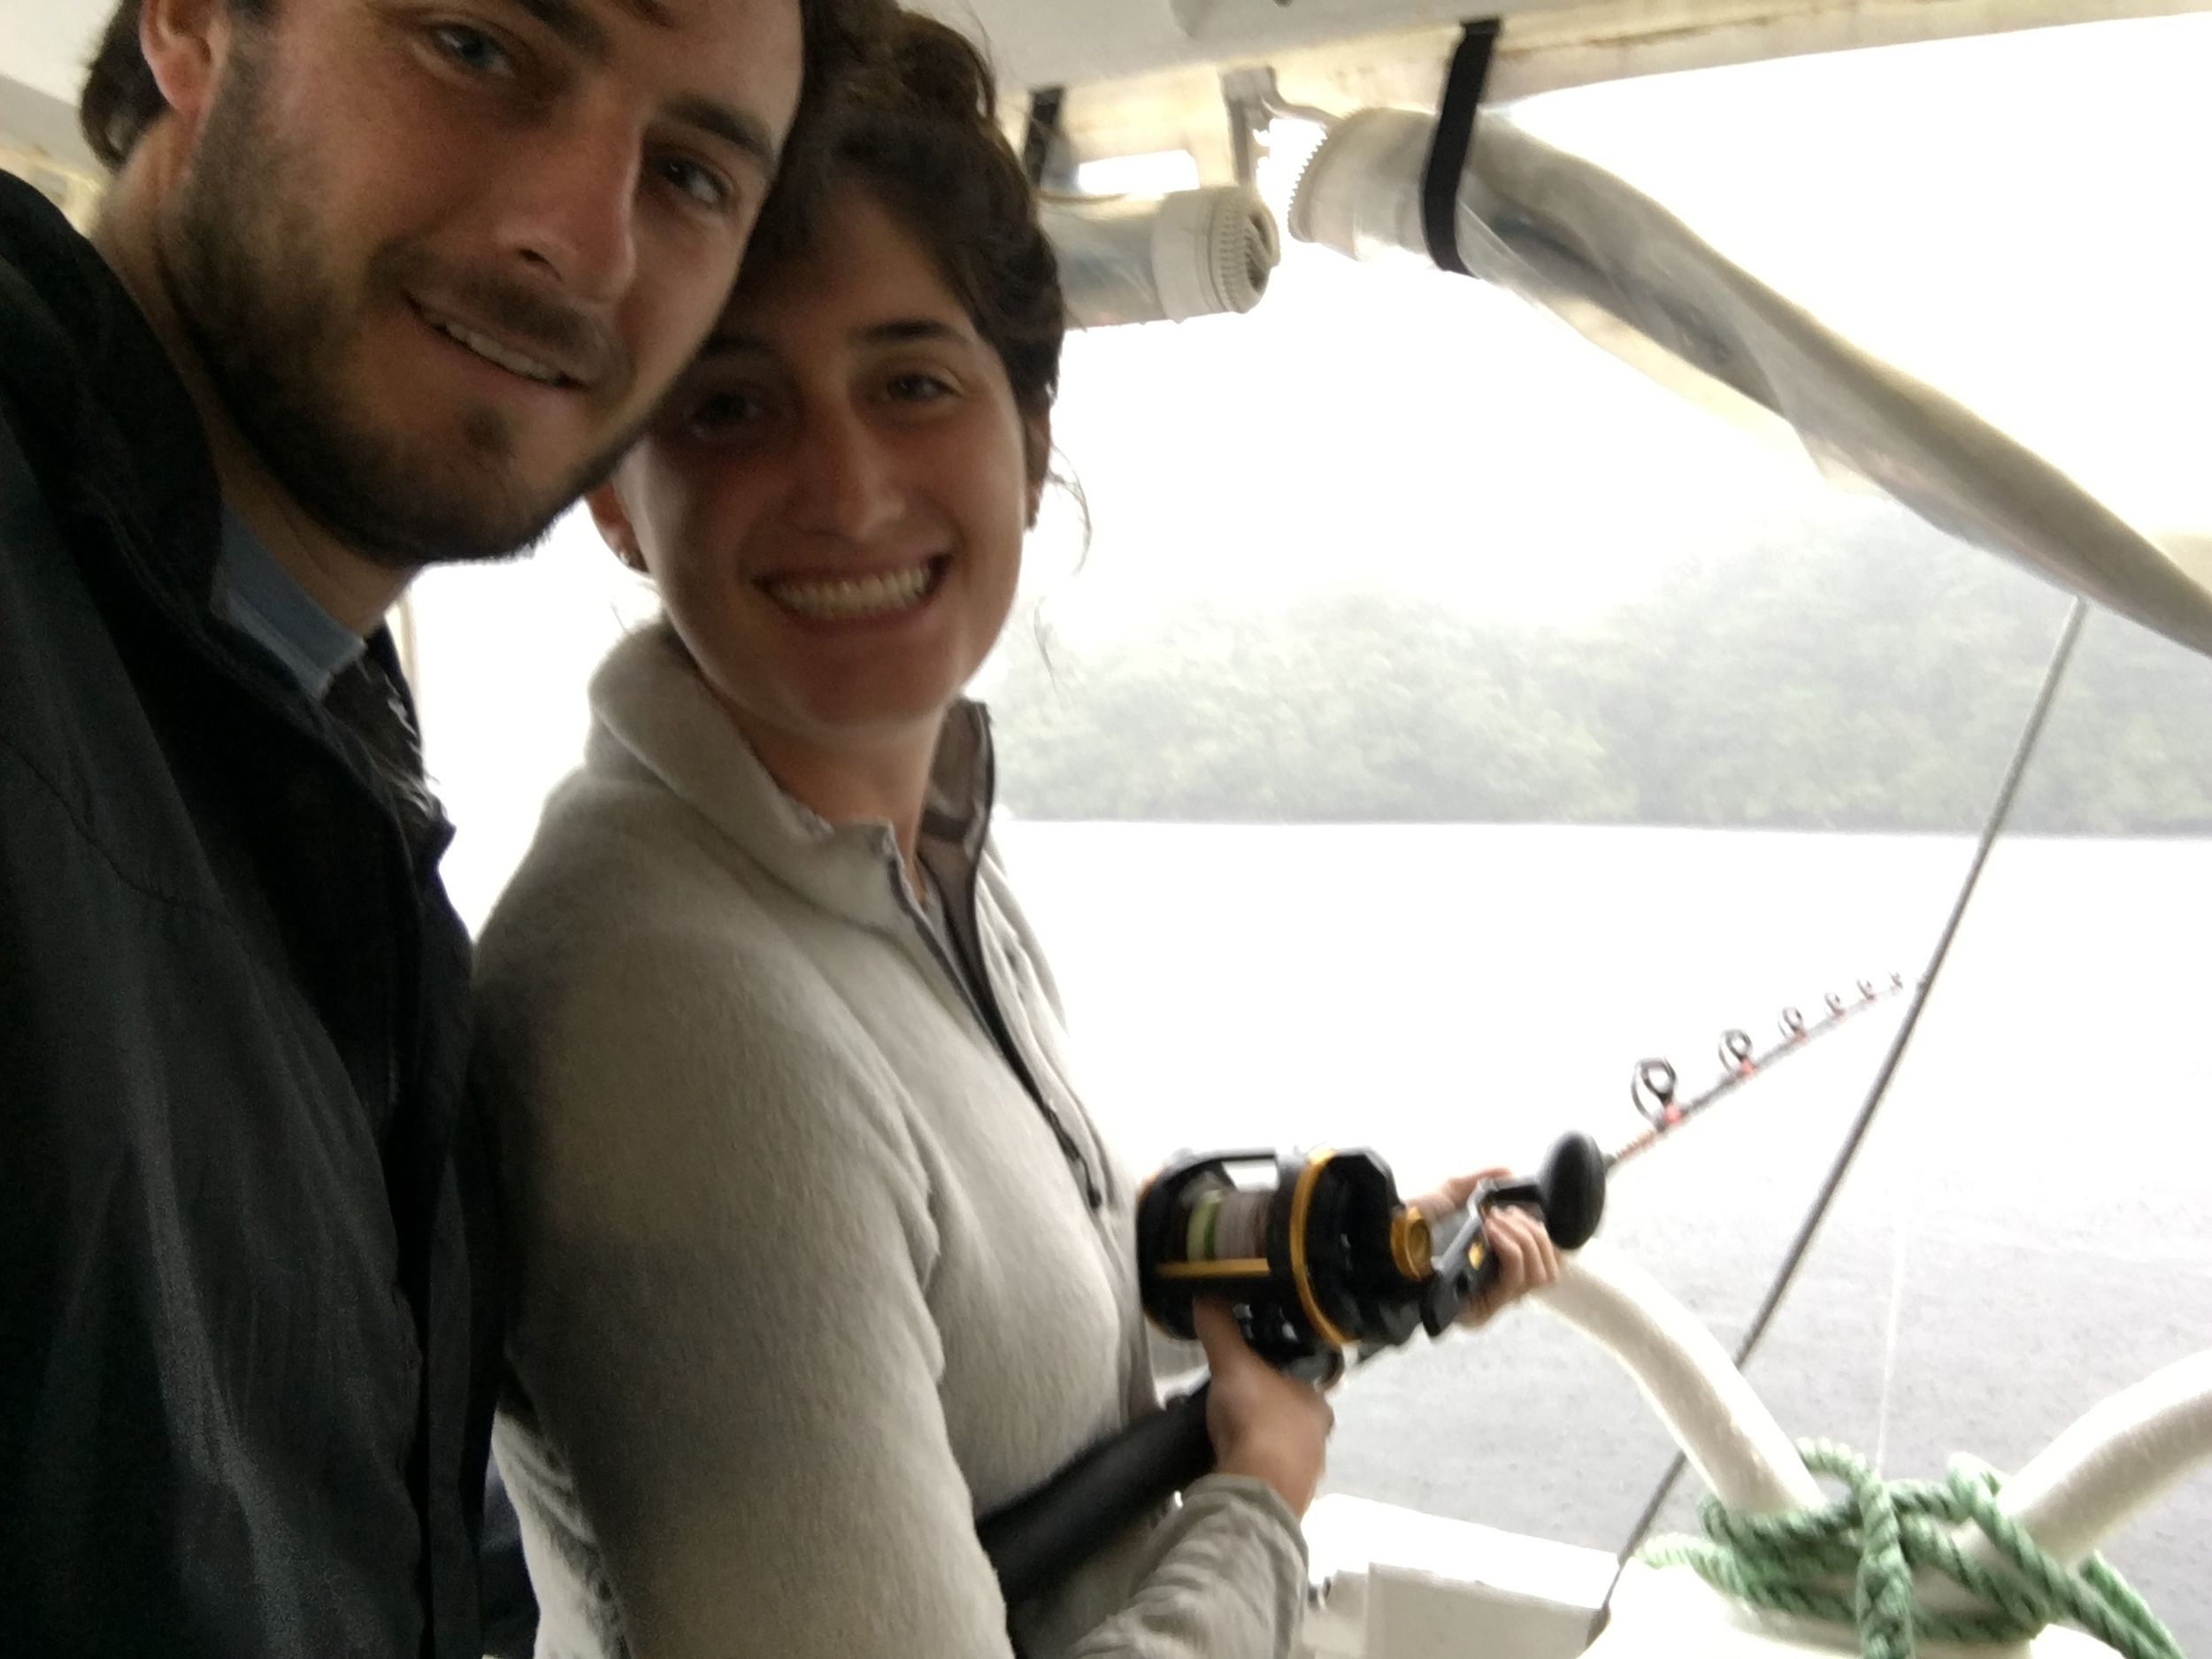 Fishing (unsuccessfully) for dinner on Doubtful Sound